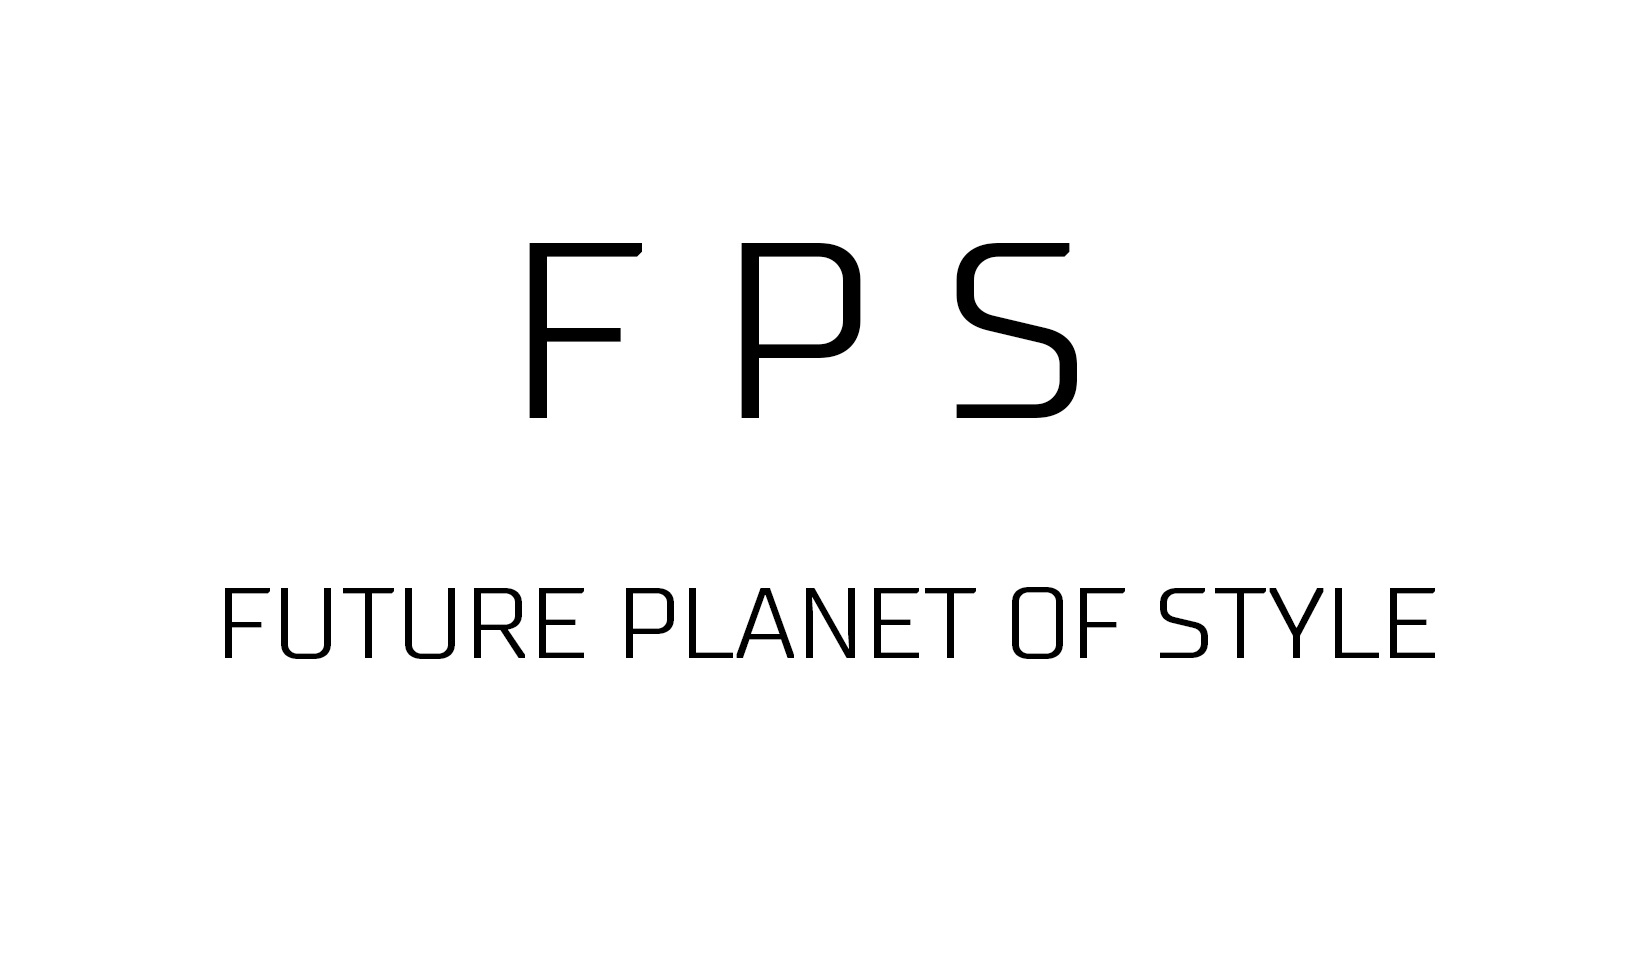 FUTURE PLANET OF STYLE